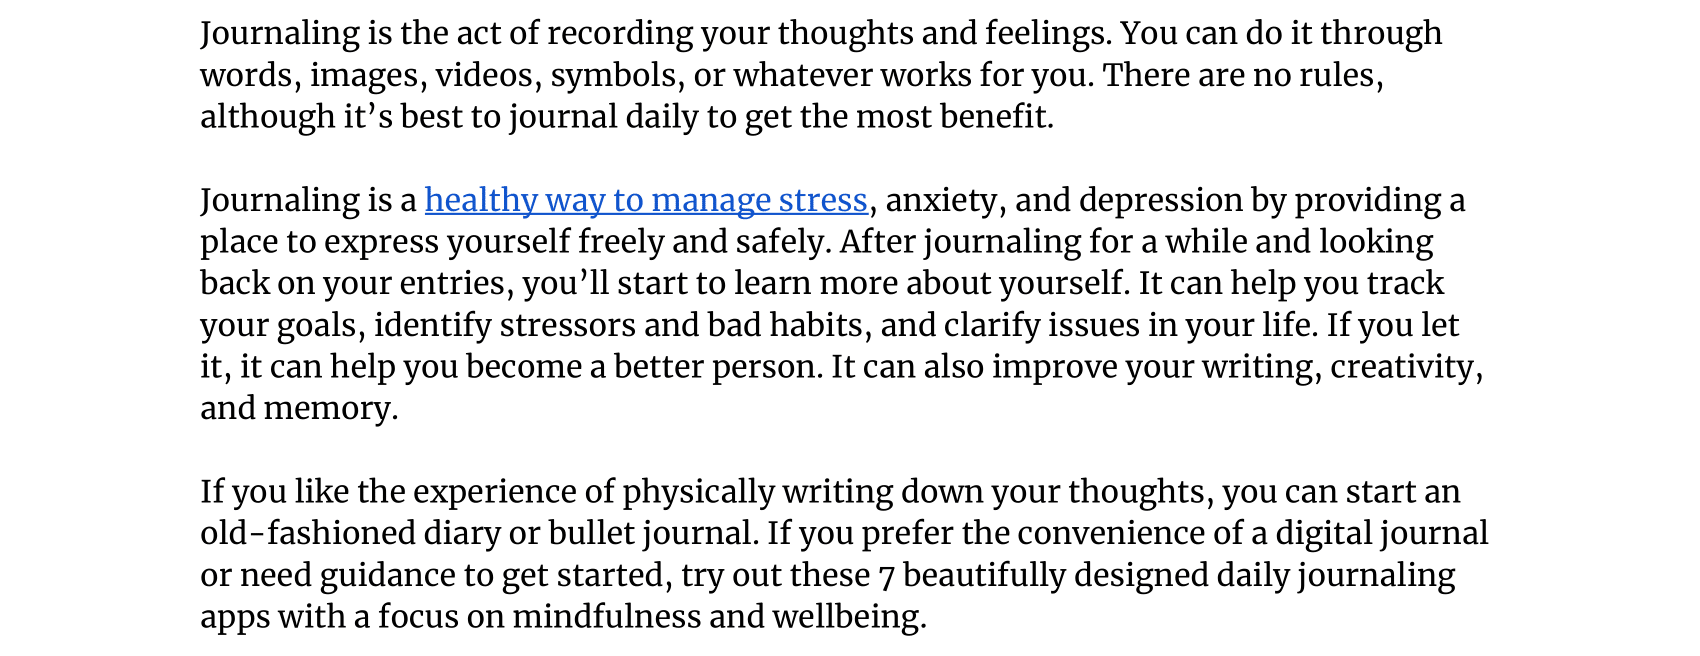 fj7-Best-Apps-for-Daily-Wellness-Journaling-1